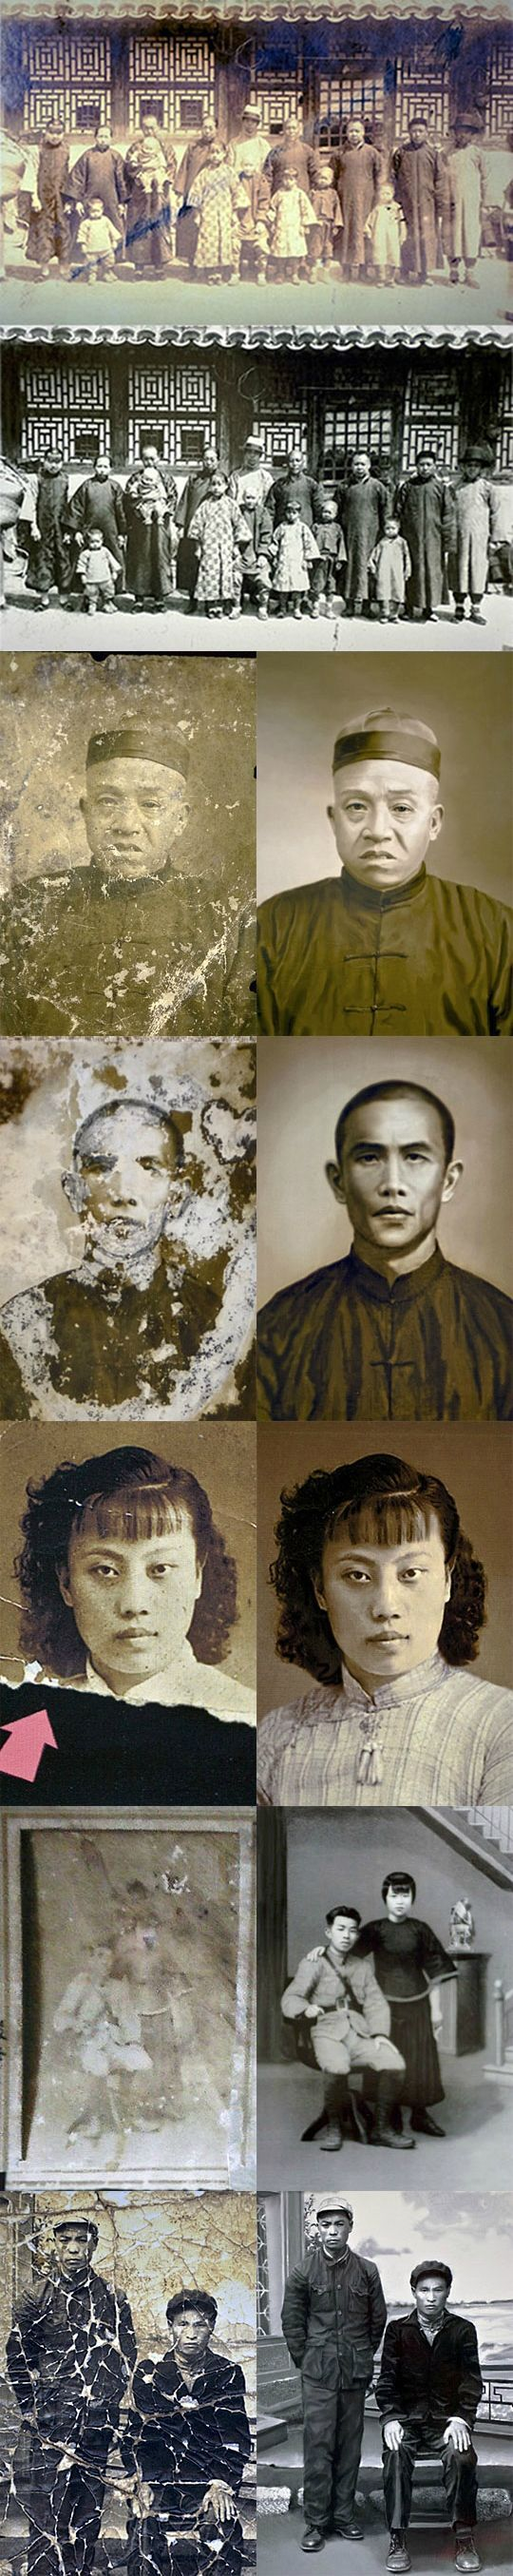 76-year-old Photoshop Master in China Restores Old Photos for Free - Imgur